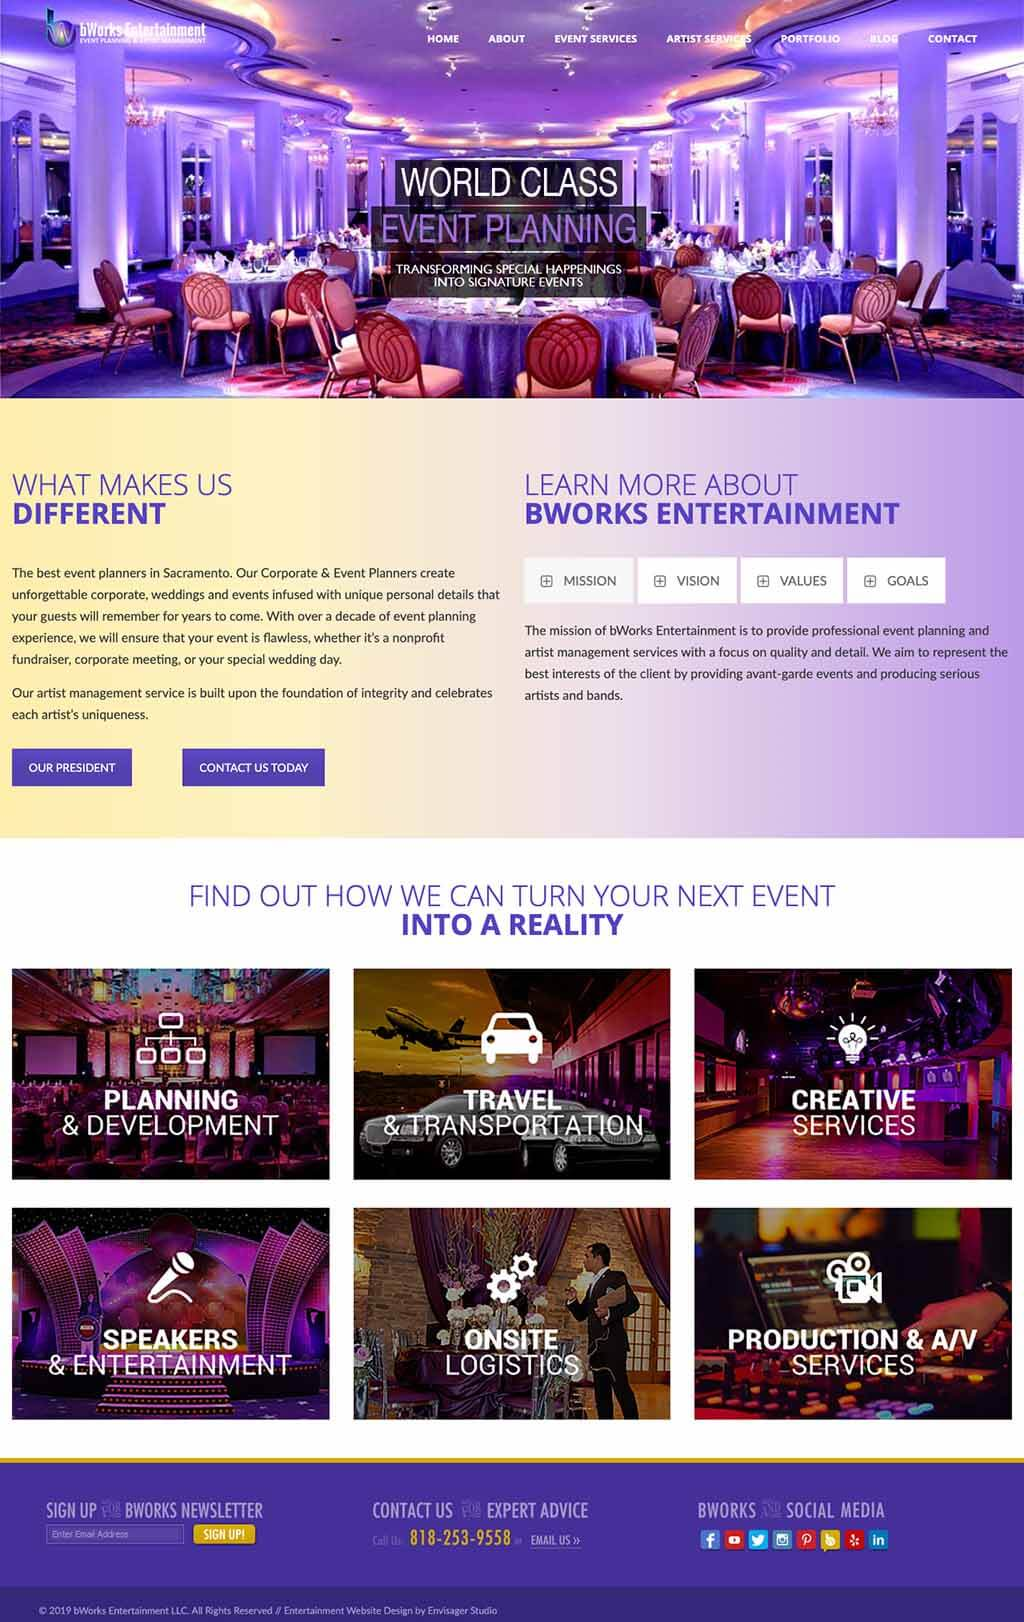 bWorks Entertainment Events Website